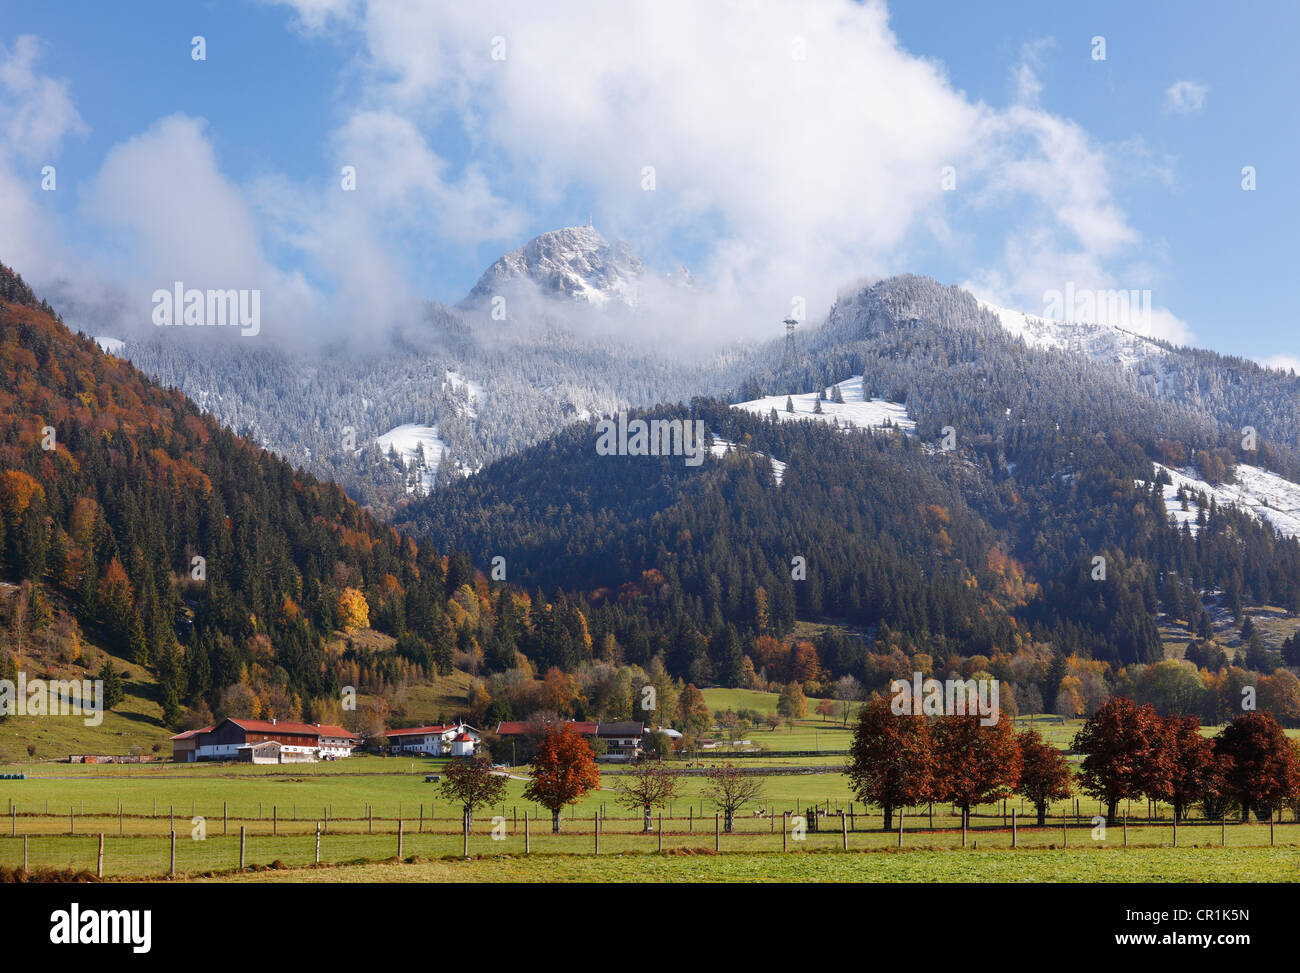 Mt Wendelstein, Dorf quarter of Bayrischzell, Mangfall mountains, Upper Bavaria, Bavaria, Germany, Europe, PublicGround - Stock Image